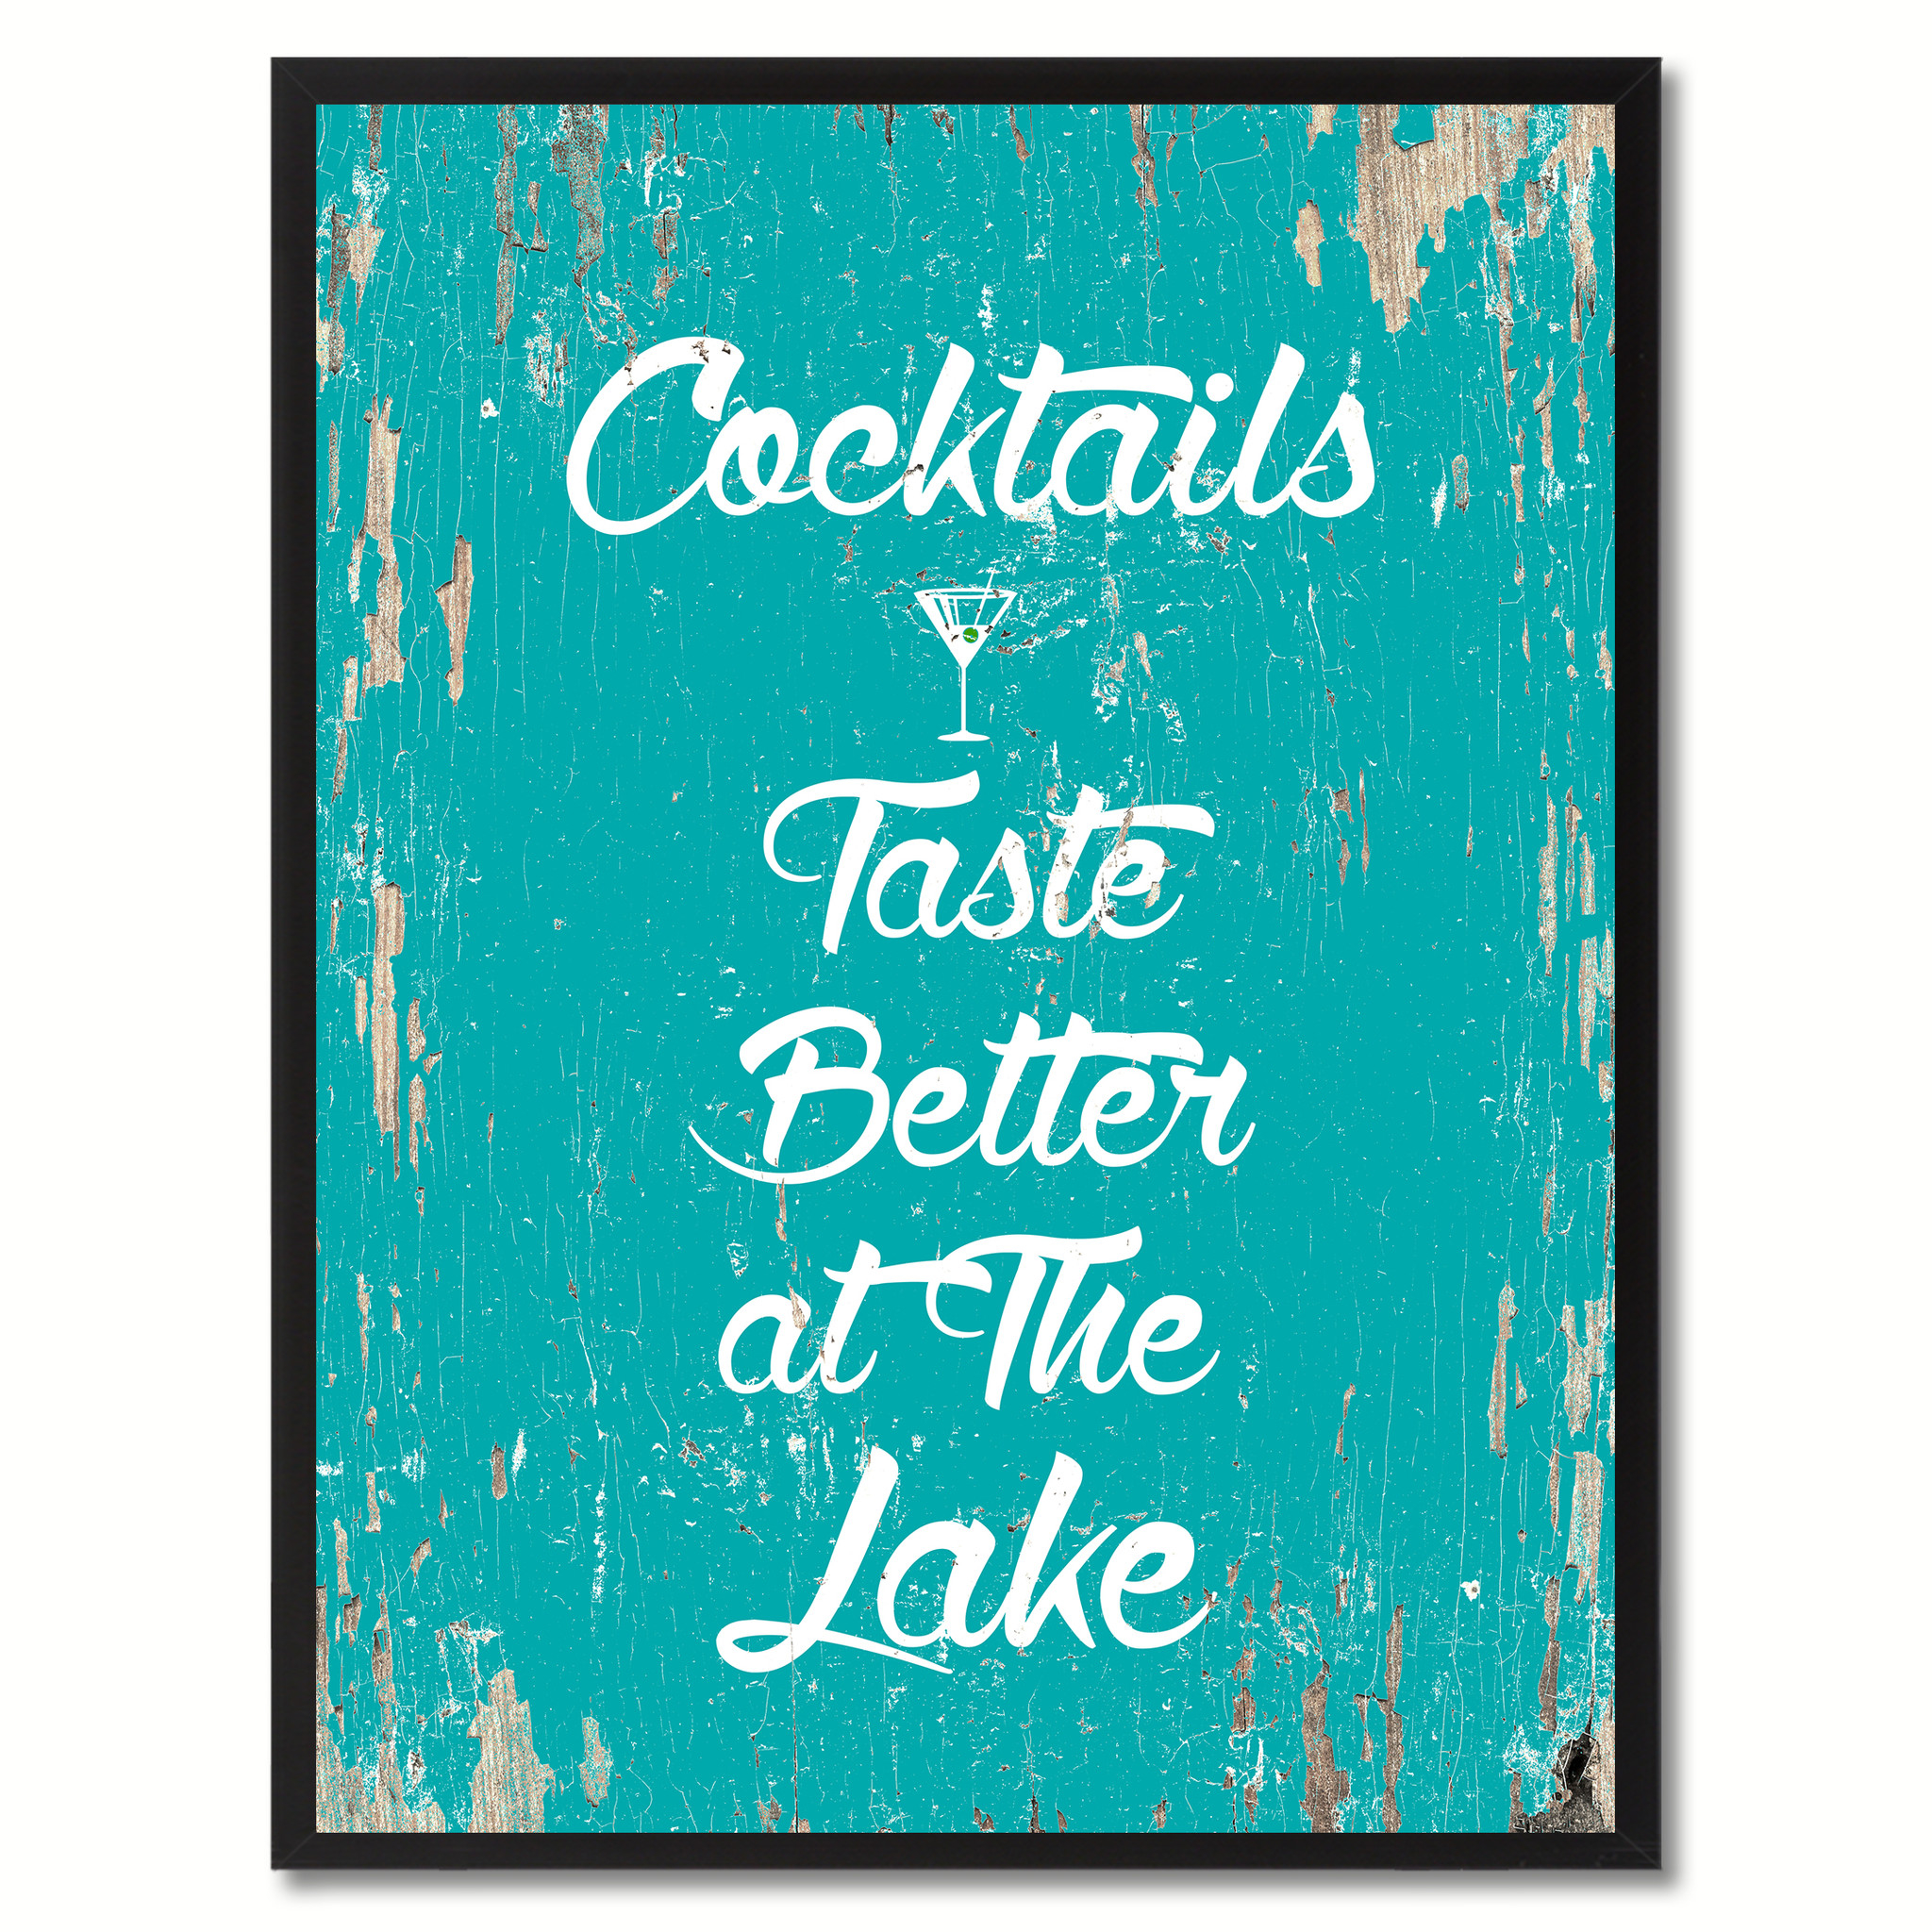 "Cocktails Taste Better At The Lake Saying Canvas Print with Picture Frame Home Decor Wall Art Gifts - 7""x9\"""